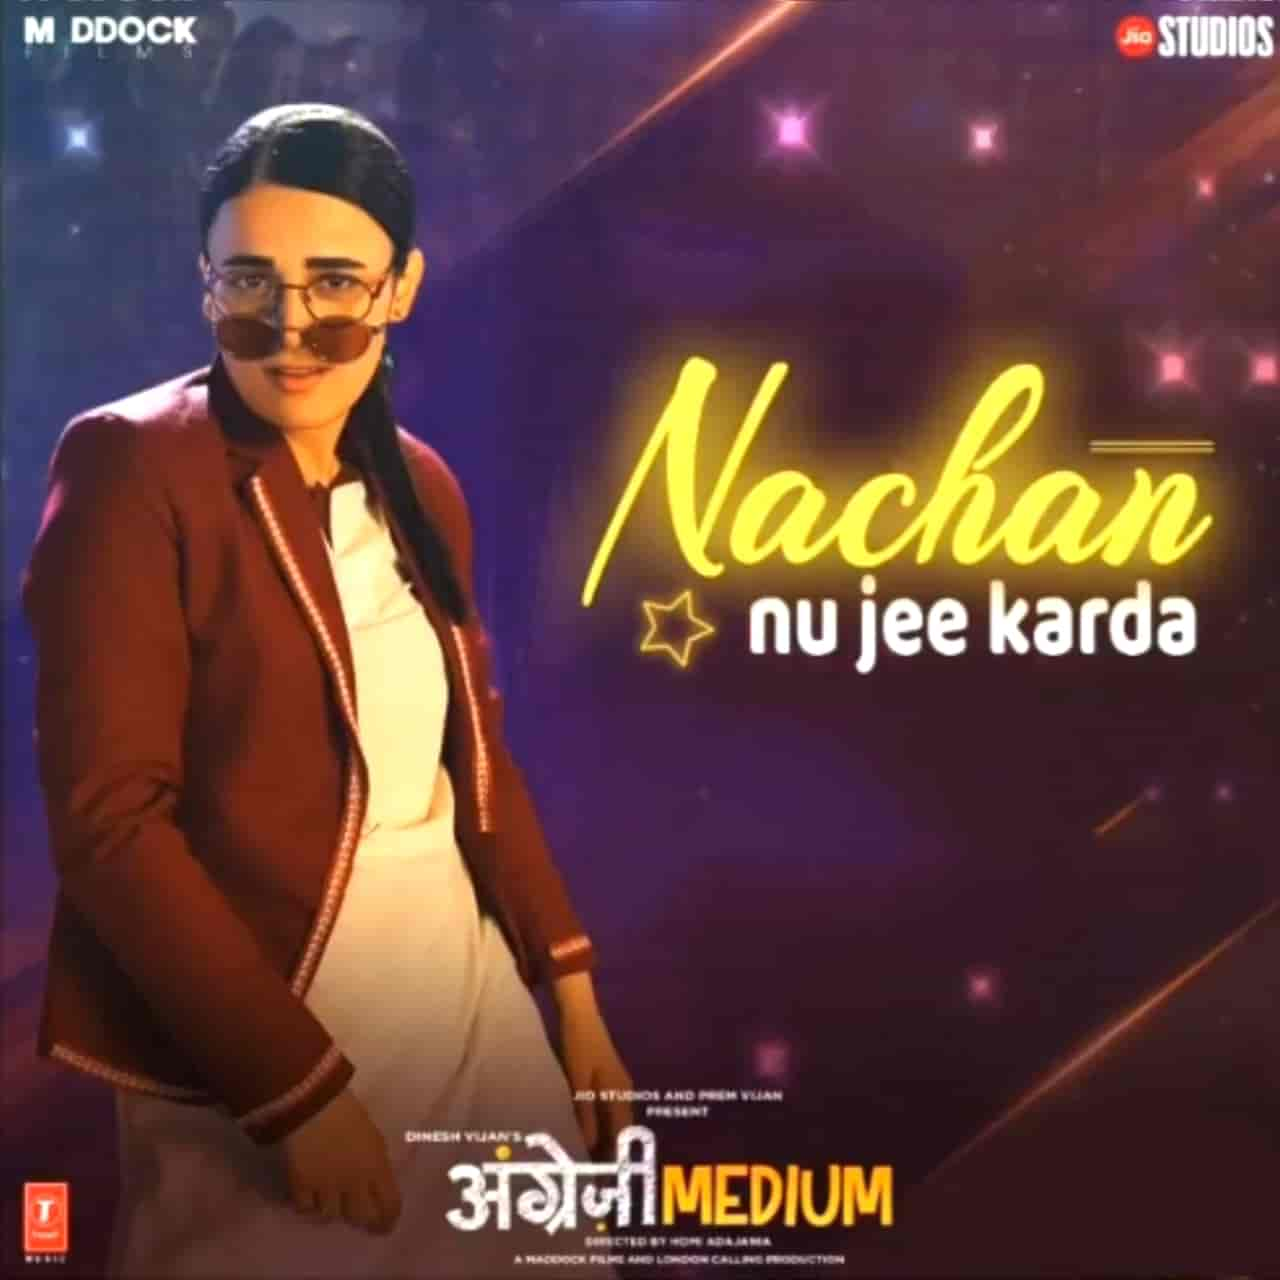 achan Nu Jee Karda Lyrics :- Romy and Nikhita Gandhi given their voices in the recreated song which is titled Nachan Nu Jee Karda from Irfan Khan starrer movie Angrezi Medium. Music of this recreated by recreating master Tanishk Bagchi while this song Nachan Nu Jee Karda lyrics also has penned by Tanishk Bagchi himself. This song is presented by T-Series label.